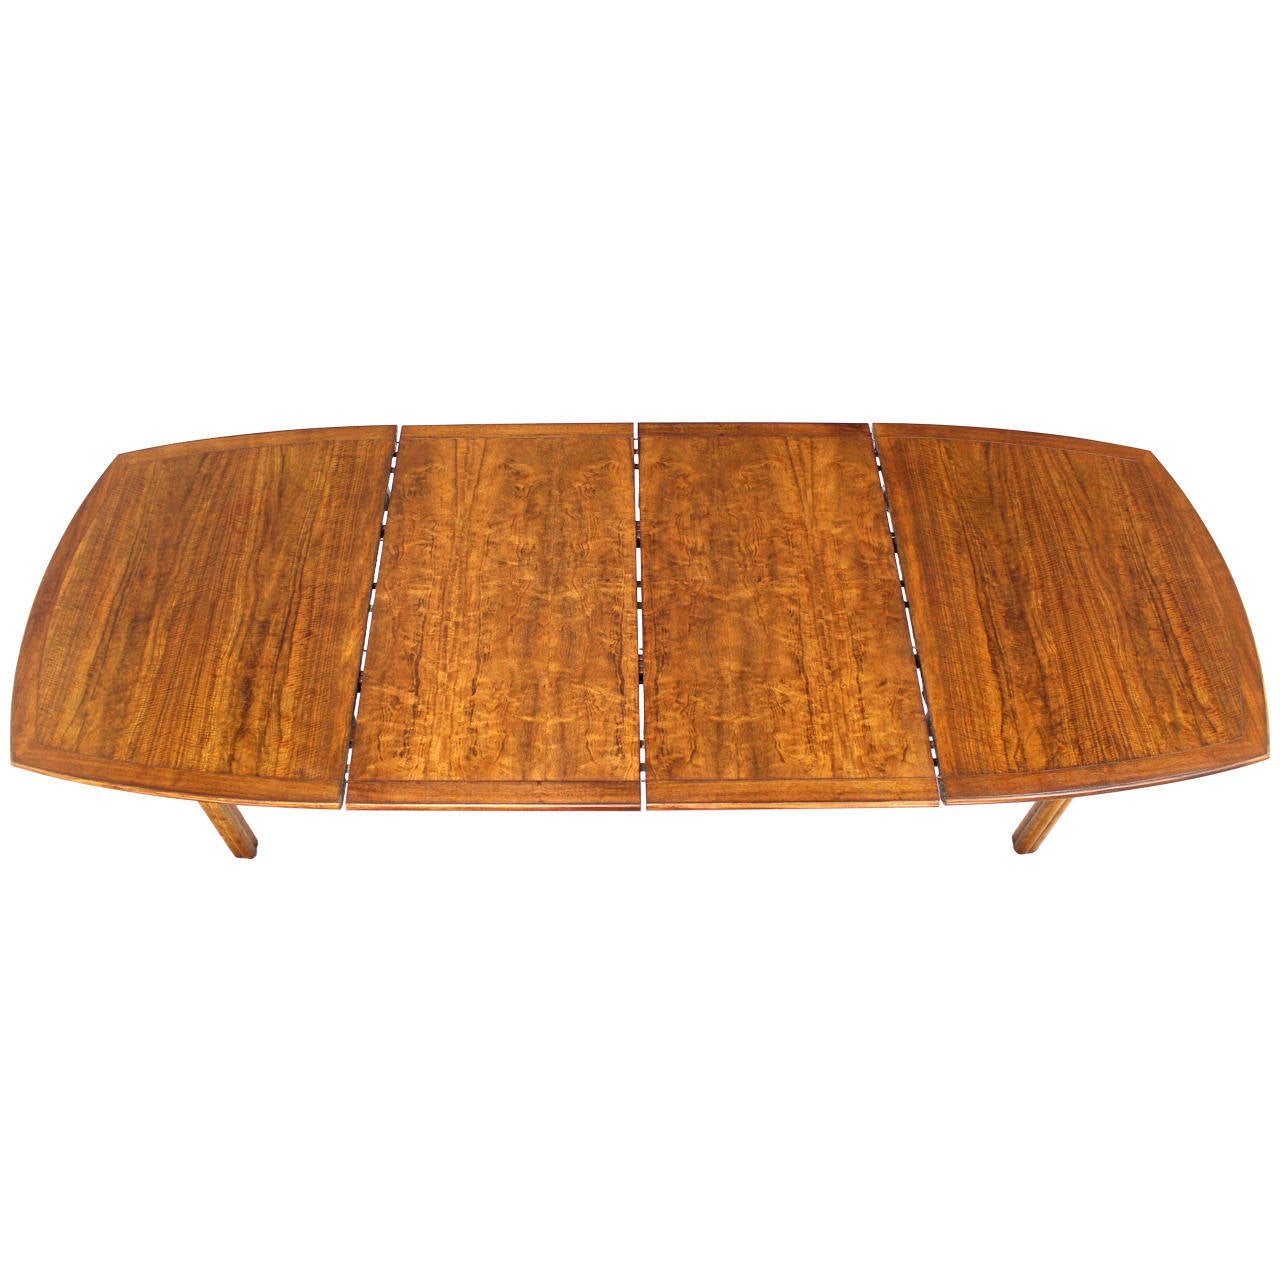 Baker Mid Century Modern Dining Table With Two Leaves For Sale At